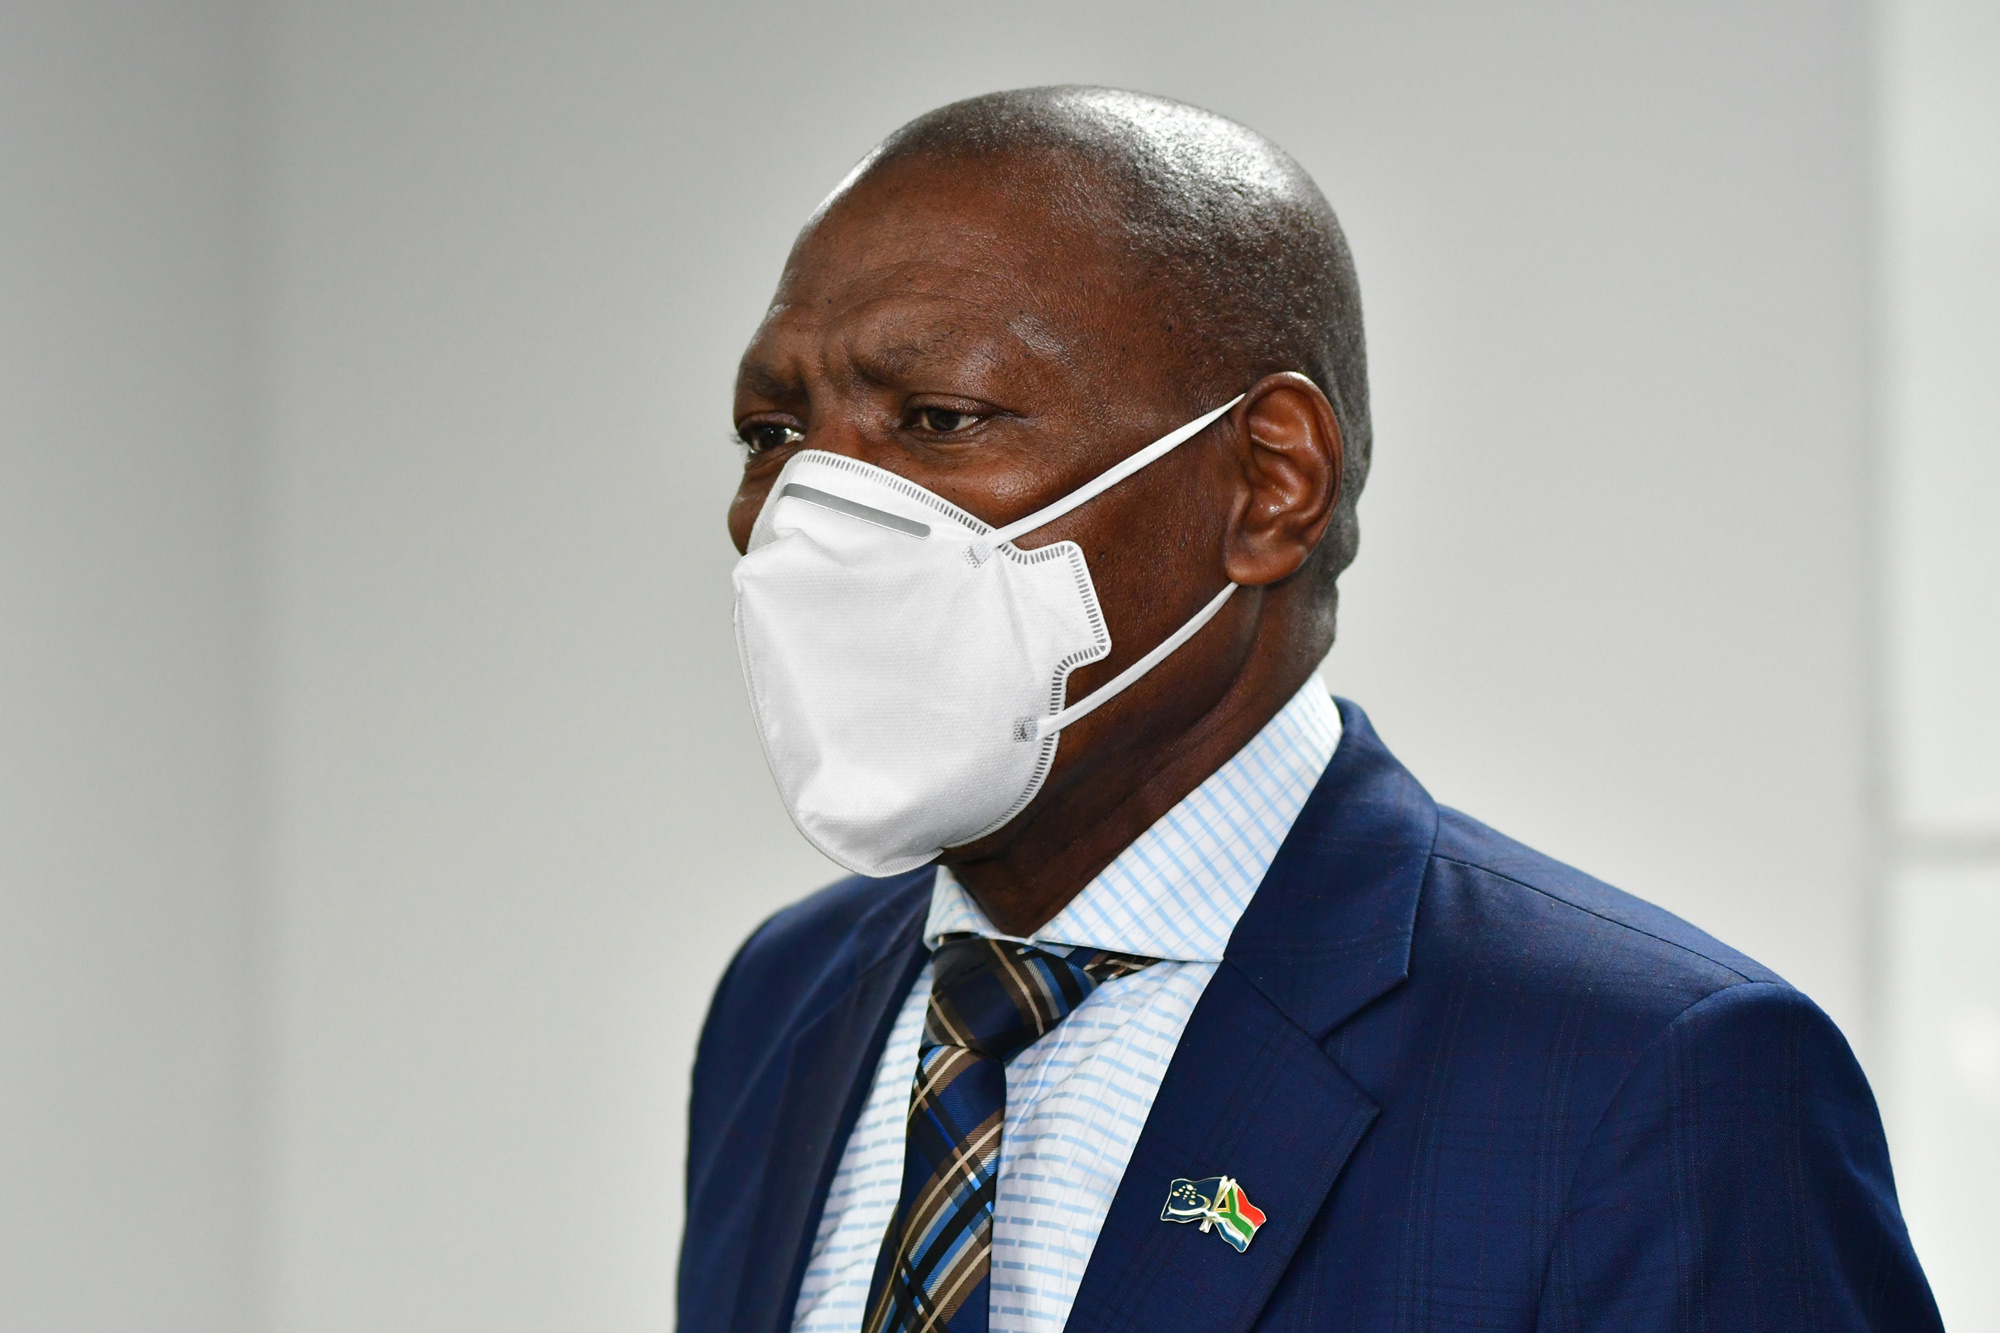 Minister of Health, Dr Zweli Mkhize visits Clairwood Hospital on August 6 in Durban, South Africa.